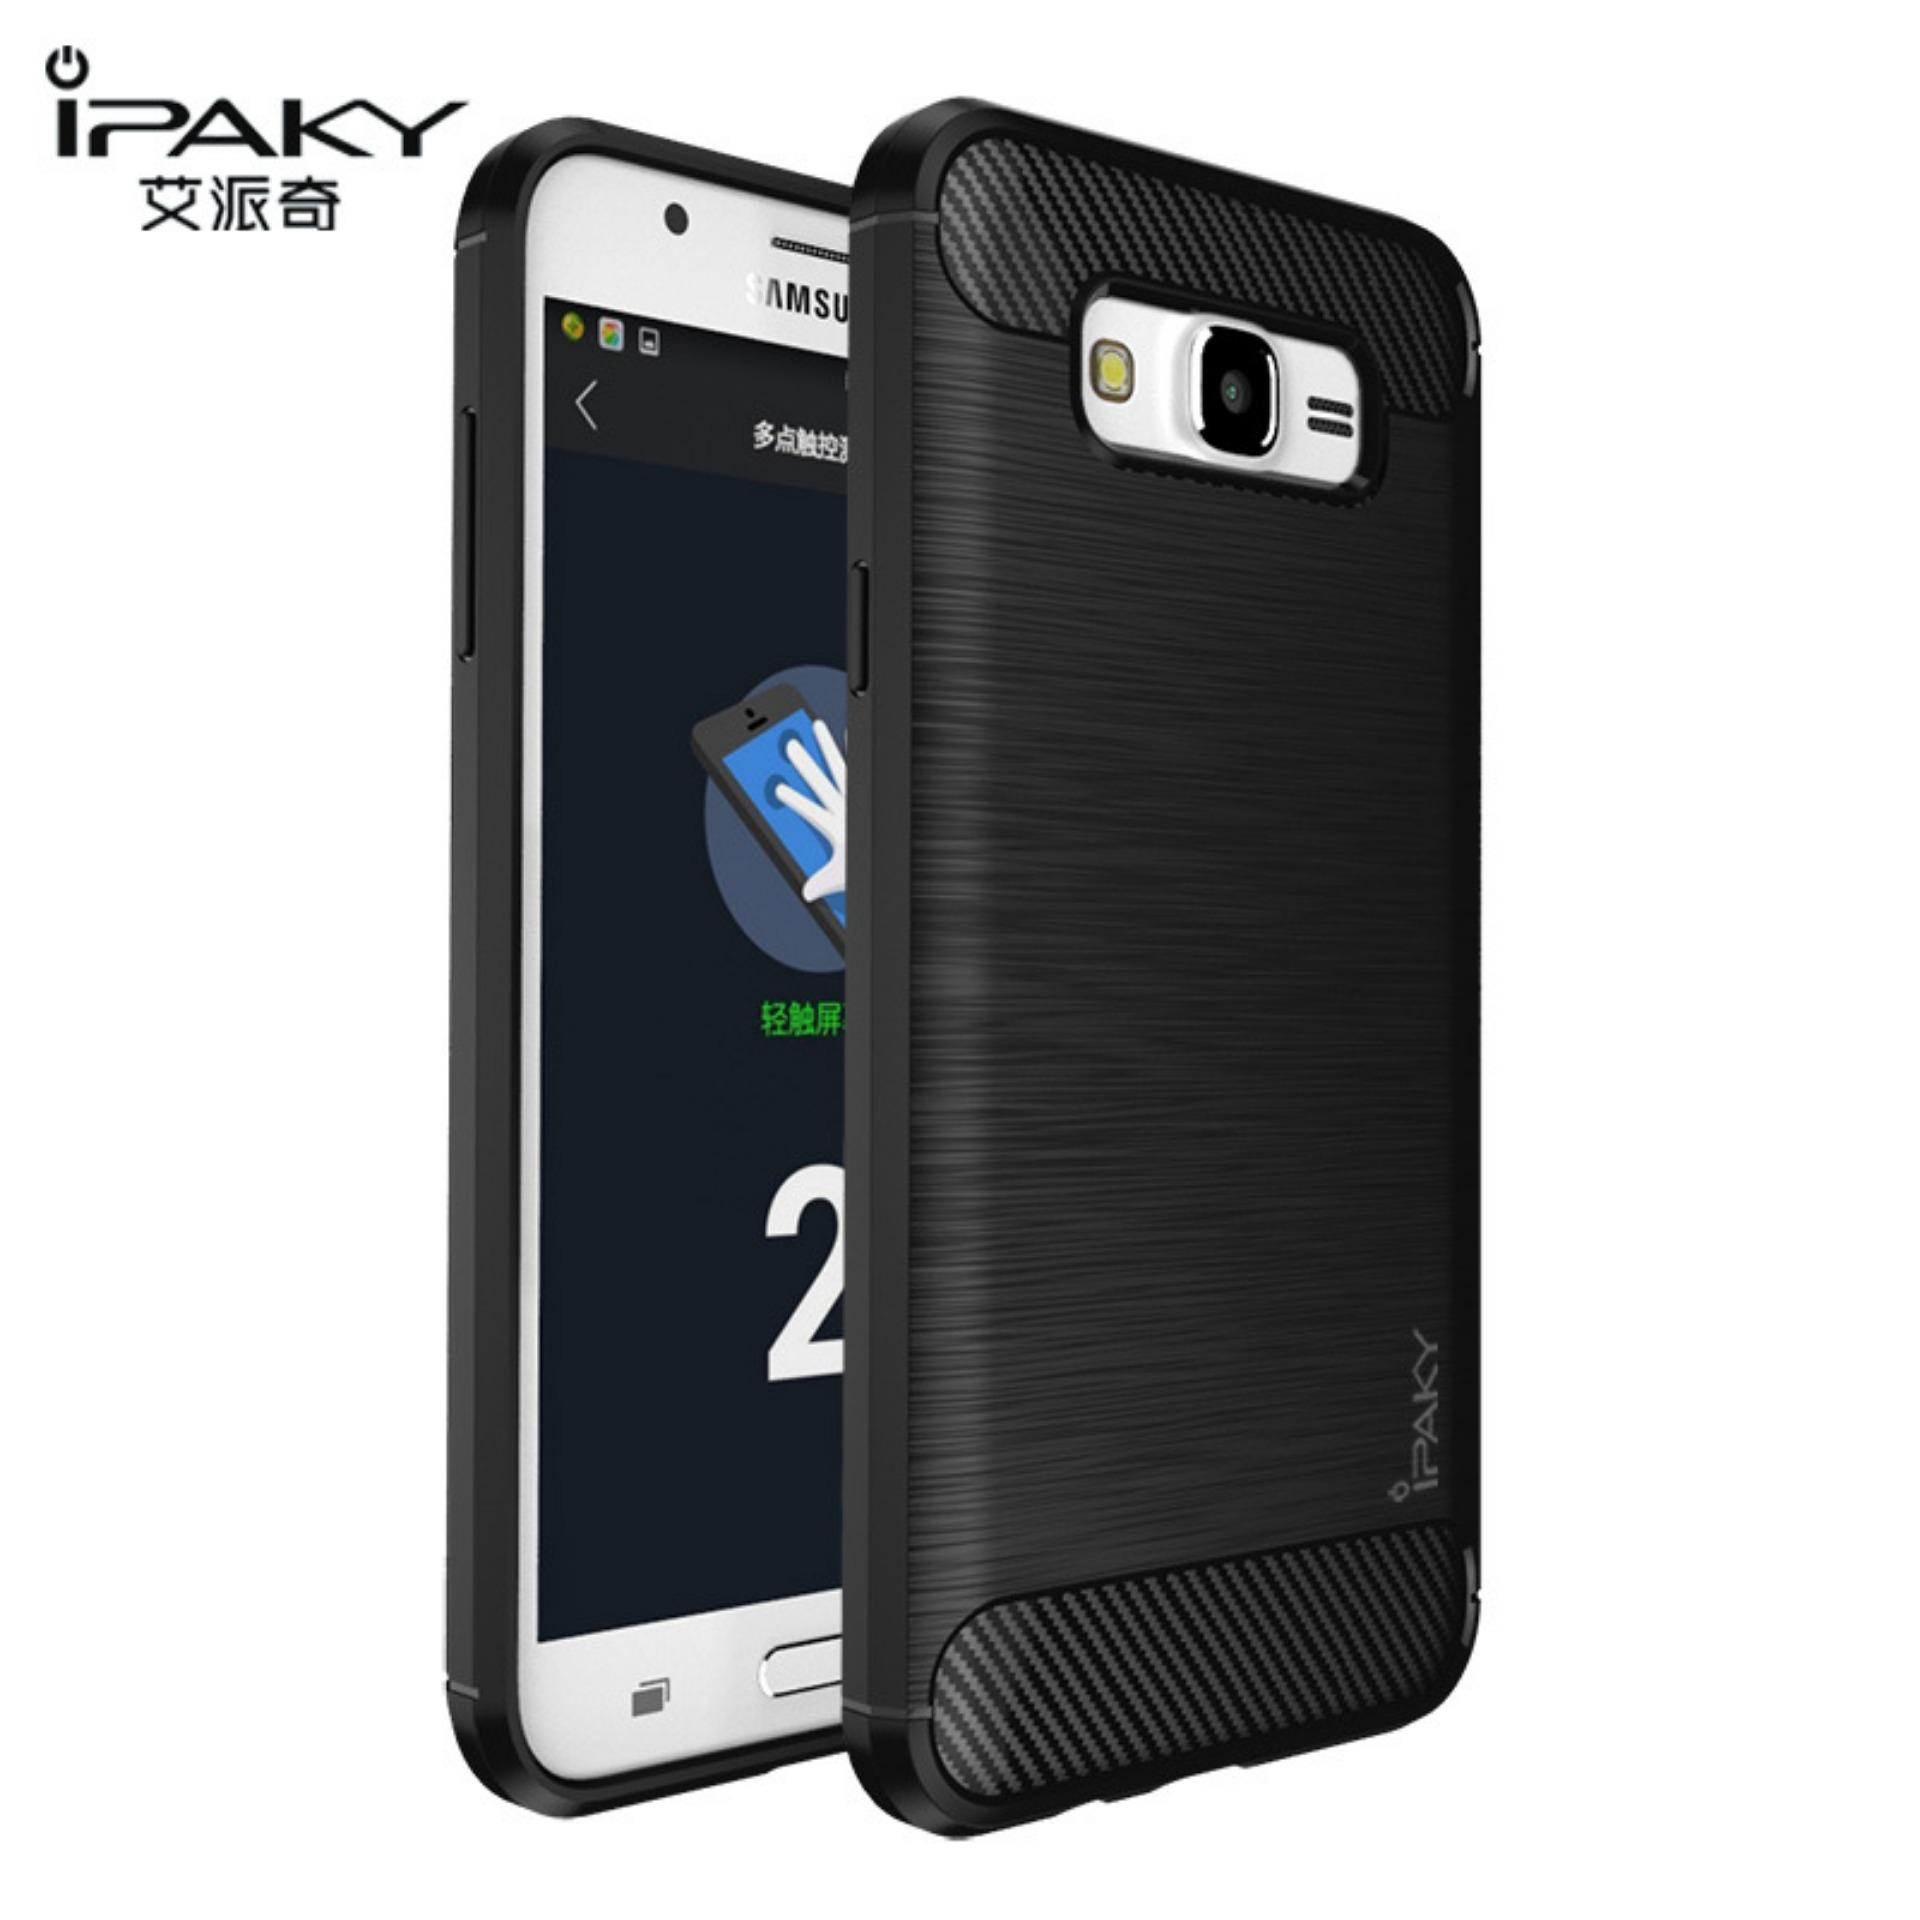 Original Lazada Case Ipaky Shockproof Carbon Hybrid For Samsung Galaxy J3 2016 / J320 - Hitam